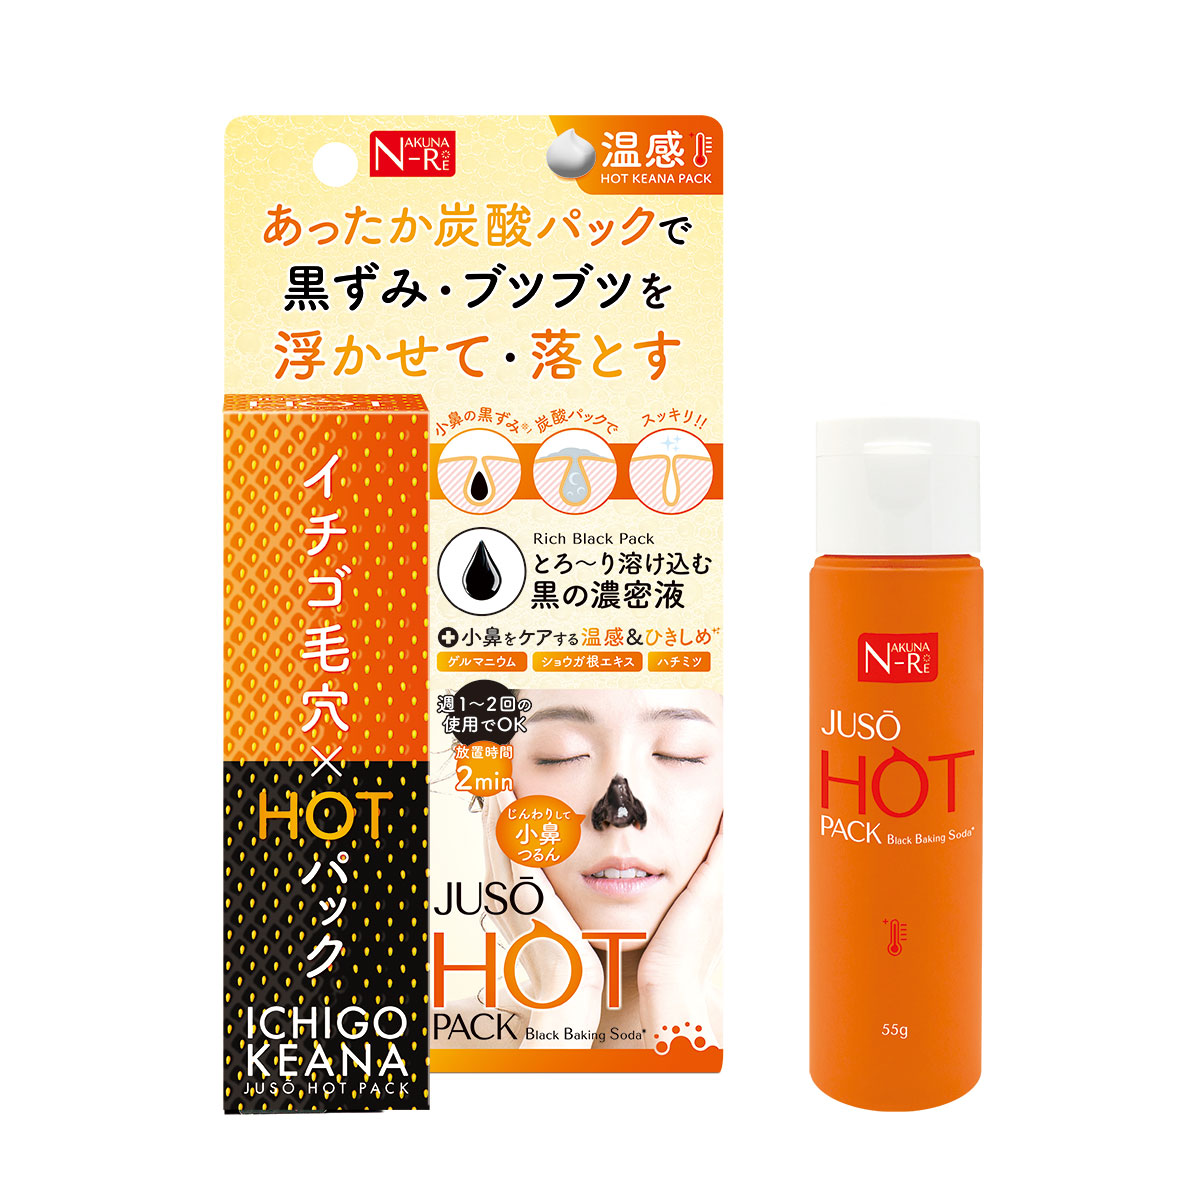 JUSO HOT PACK